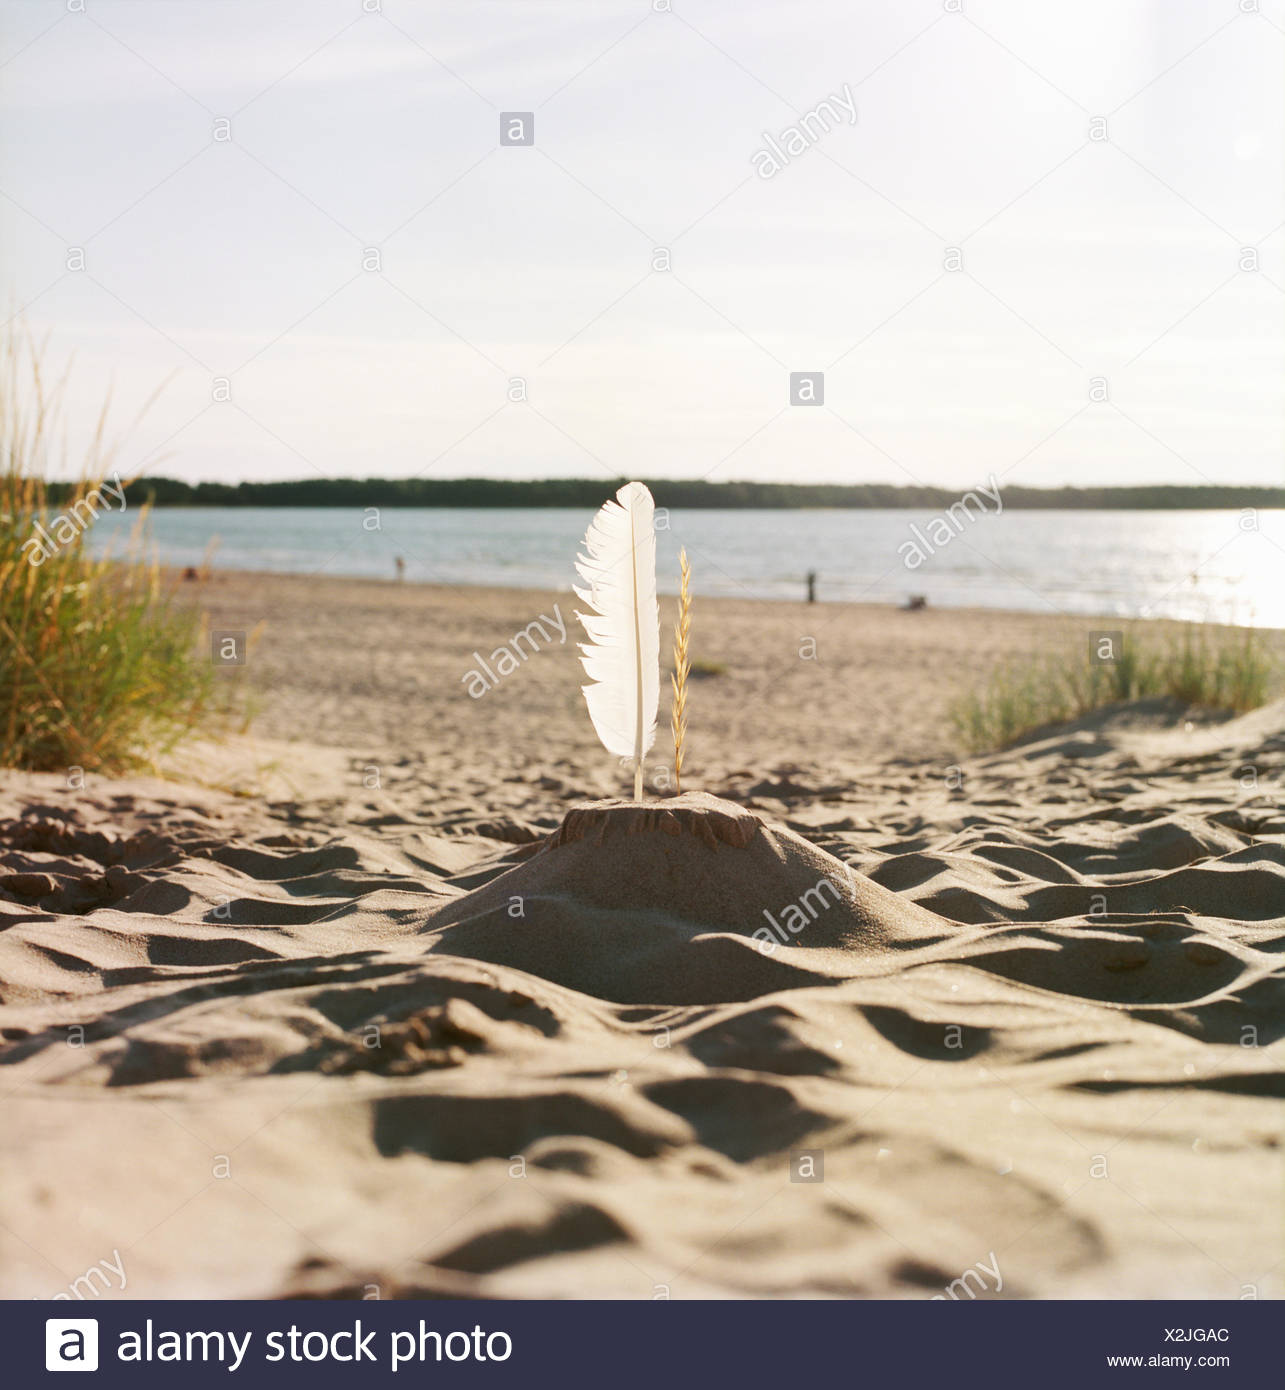 Finland, Pori, Yyteri, Sandcastle with feather on sandy beach - Stock Image